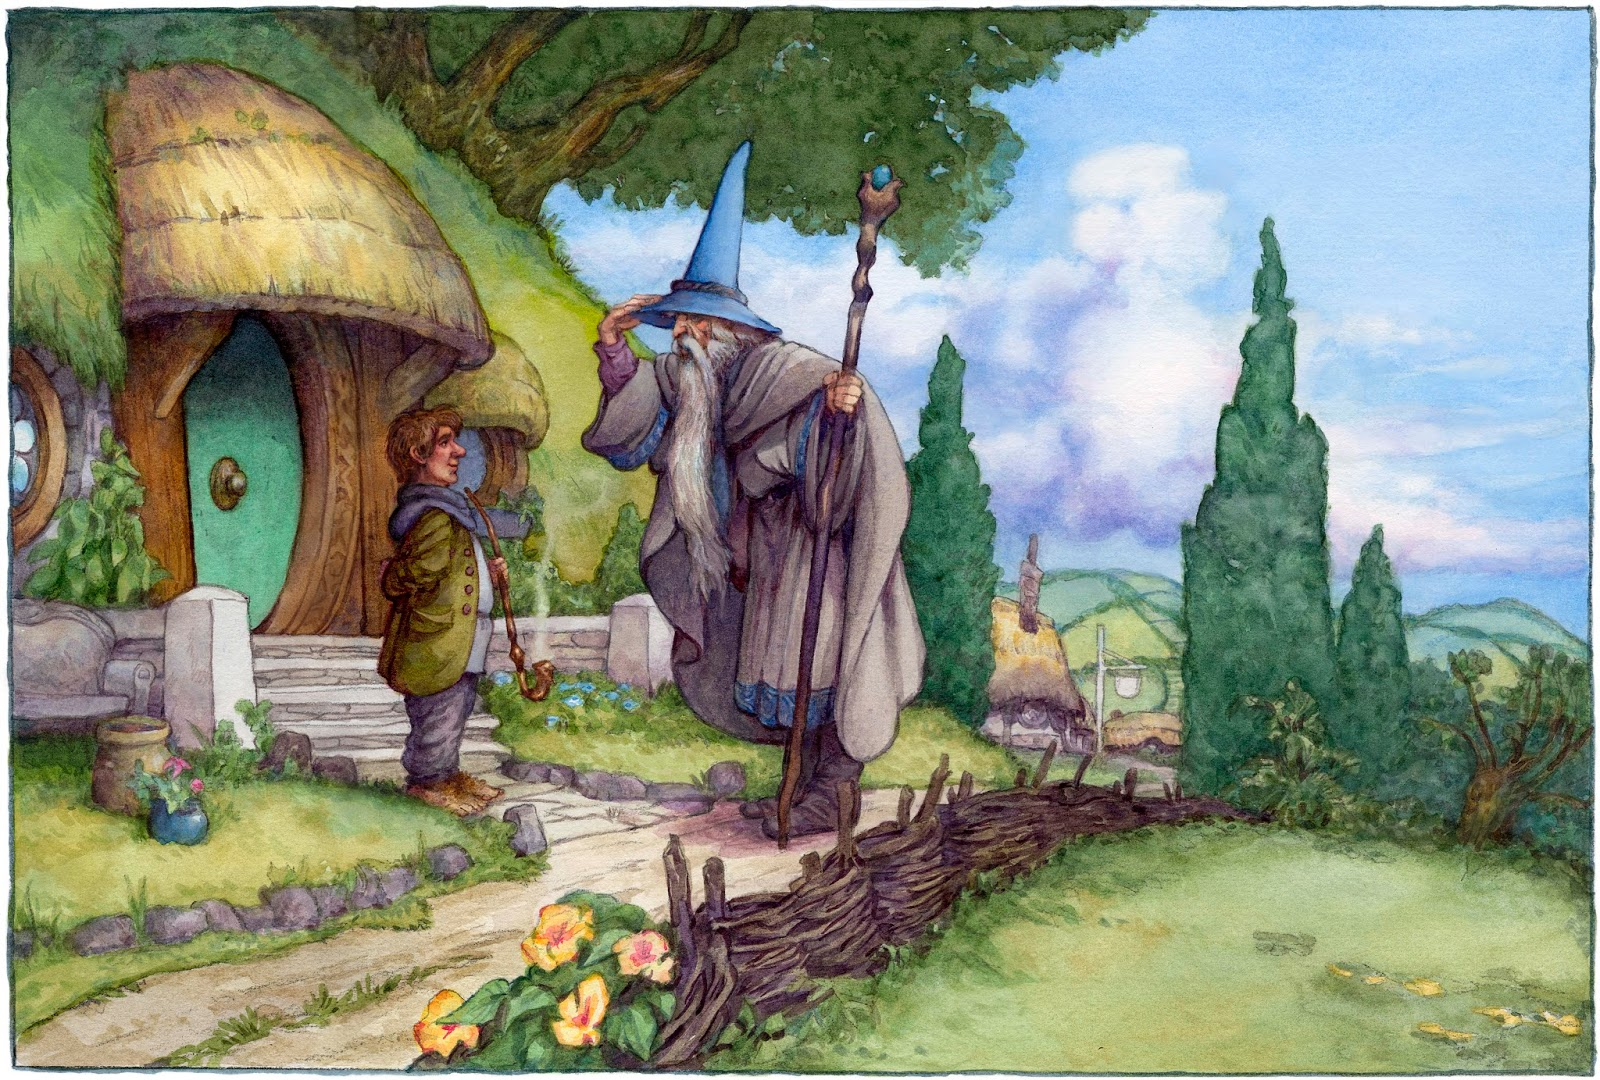 Hobbit gmail theme - David T Wenzel Noted Illustrator Of The Hobbit To Give September Demonstration